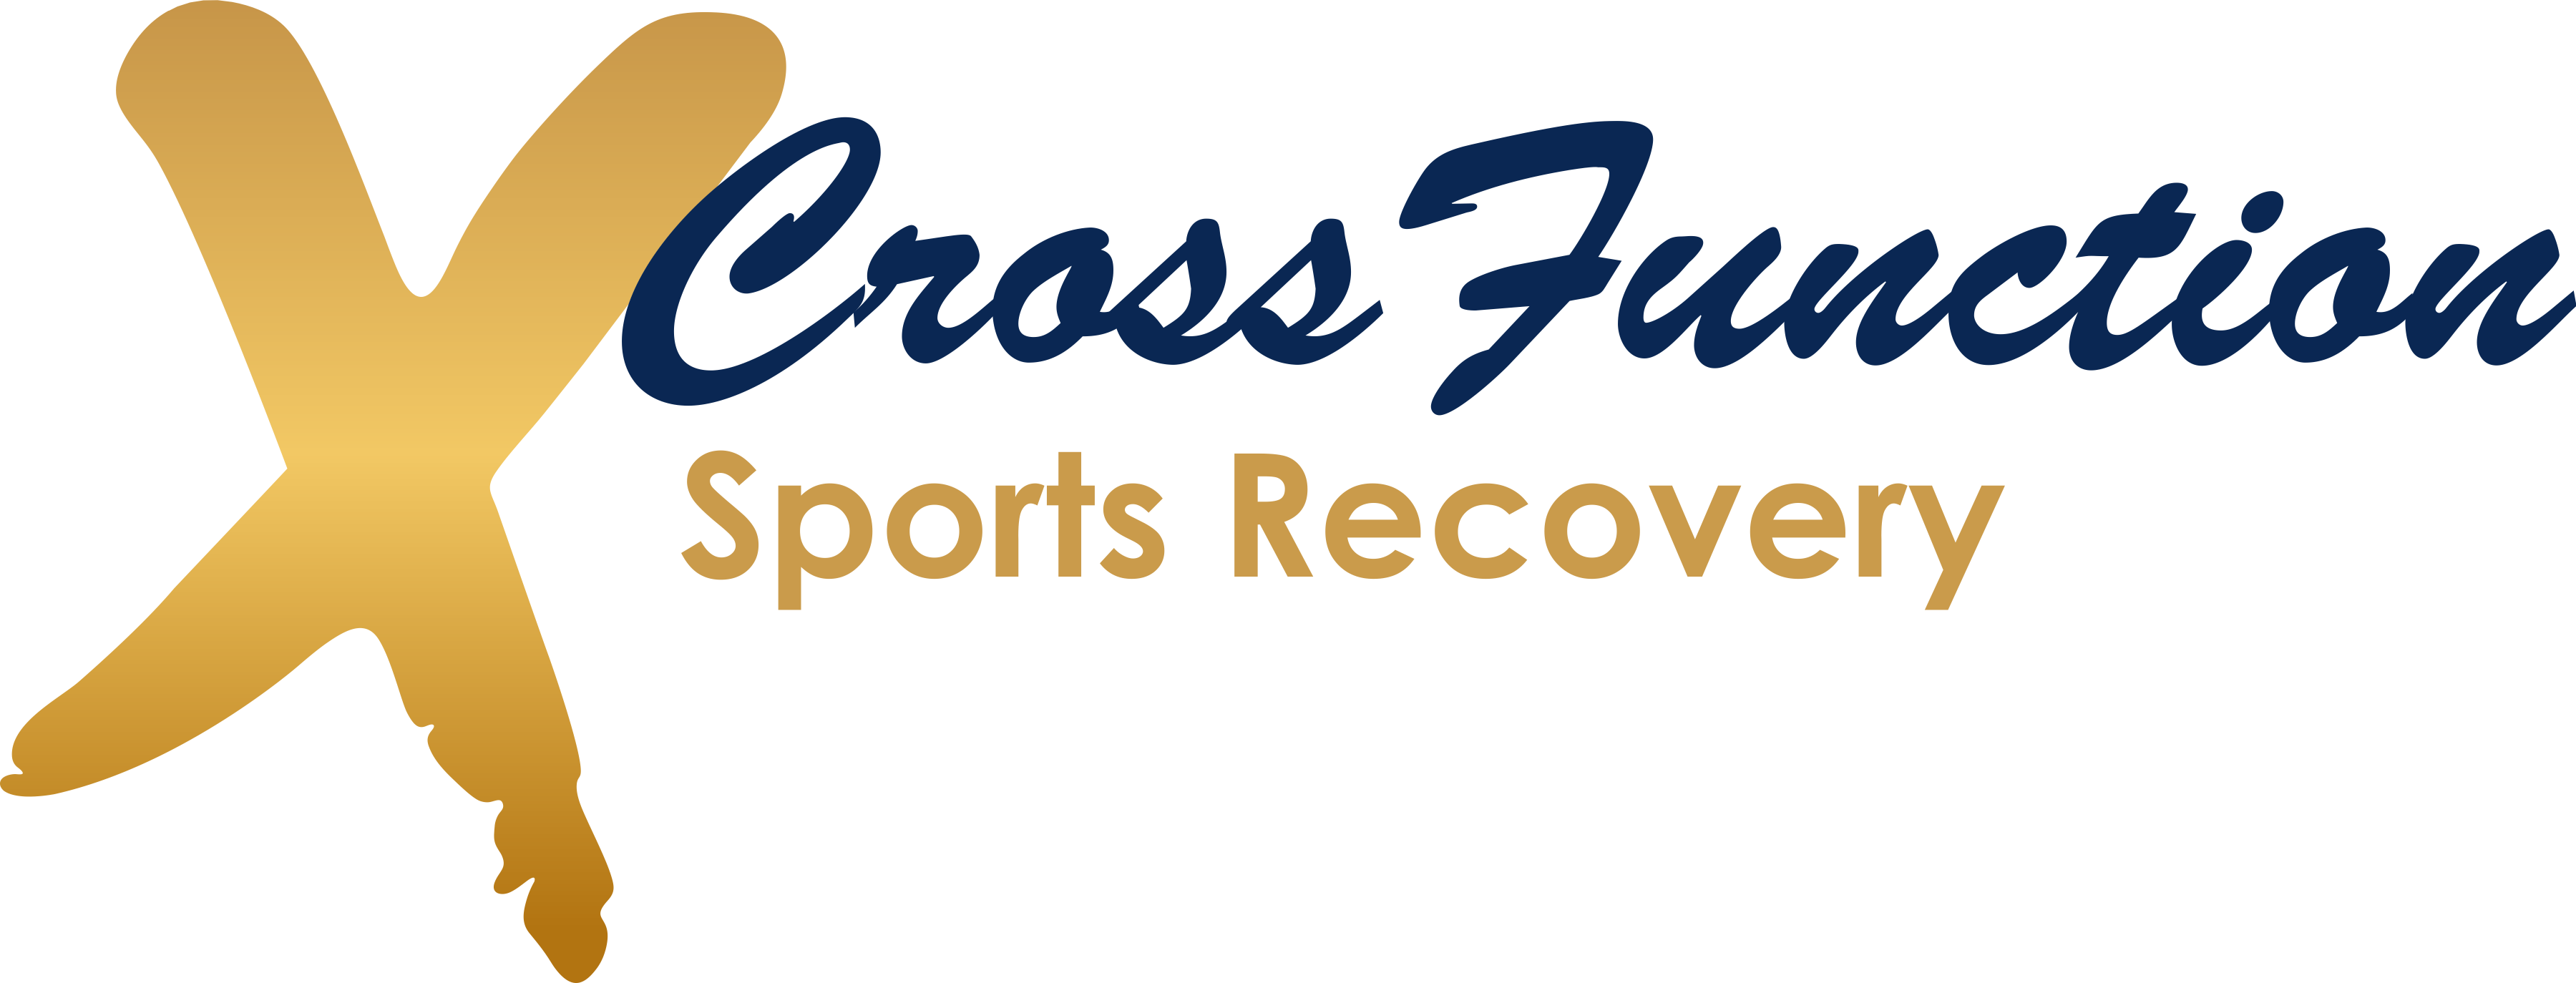 CrossFunction Sports Recovery Logo